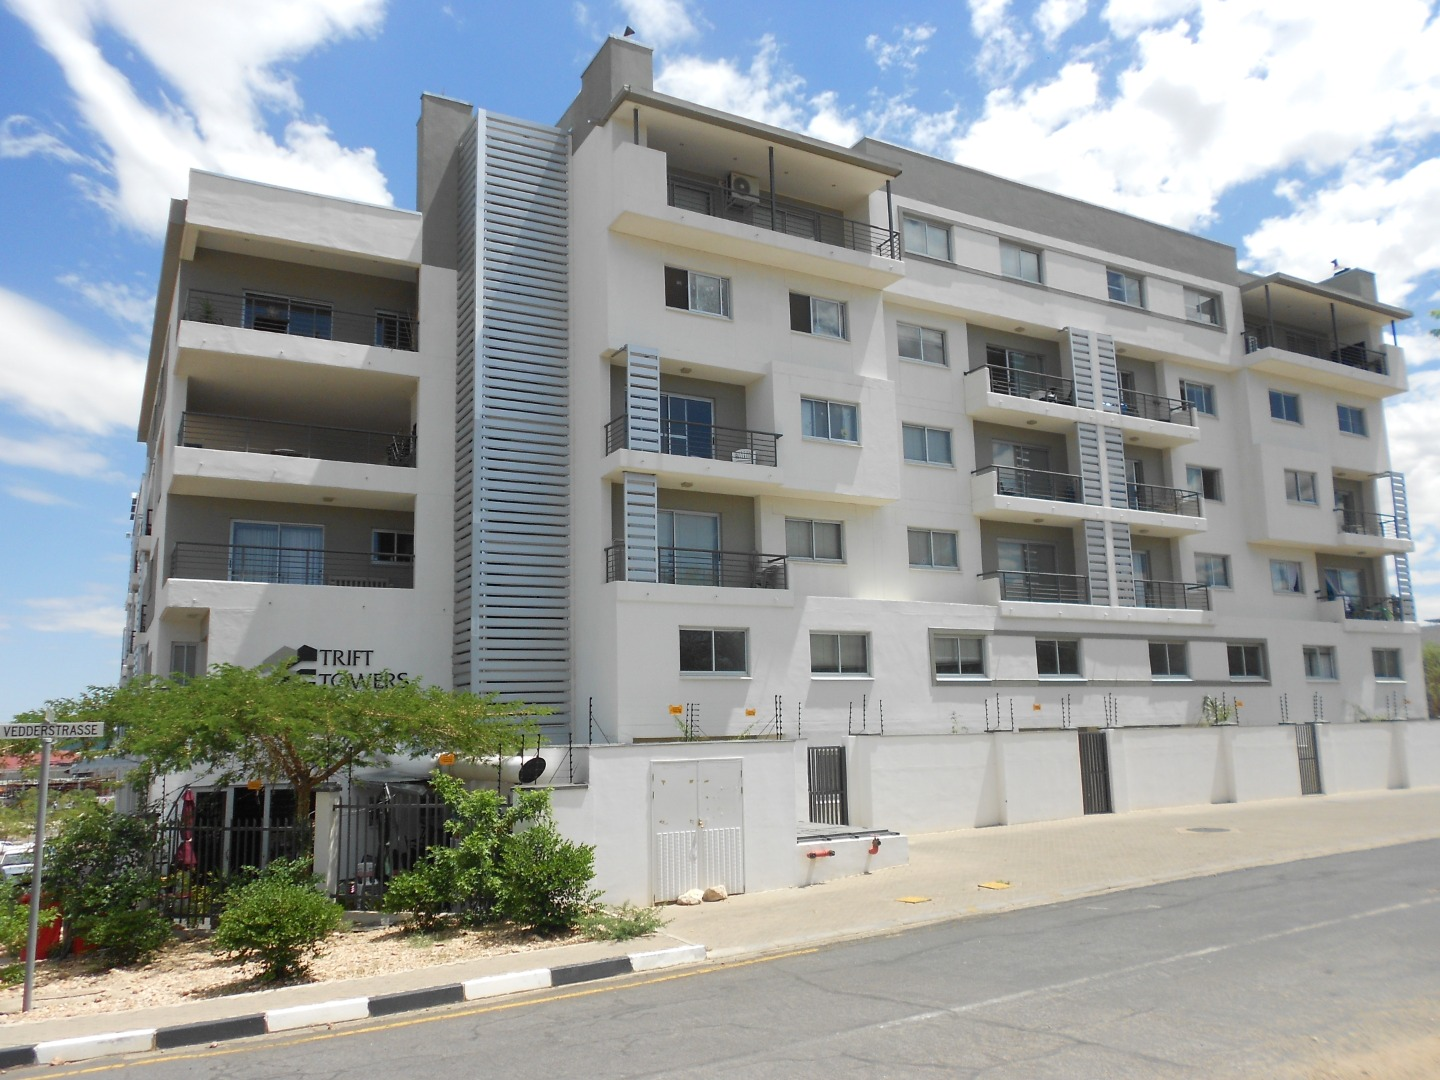 1 Bedroom Apartment / Flat For Sale in Windhoek Central